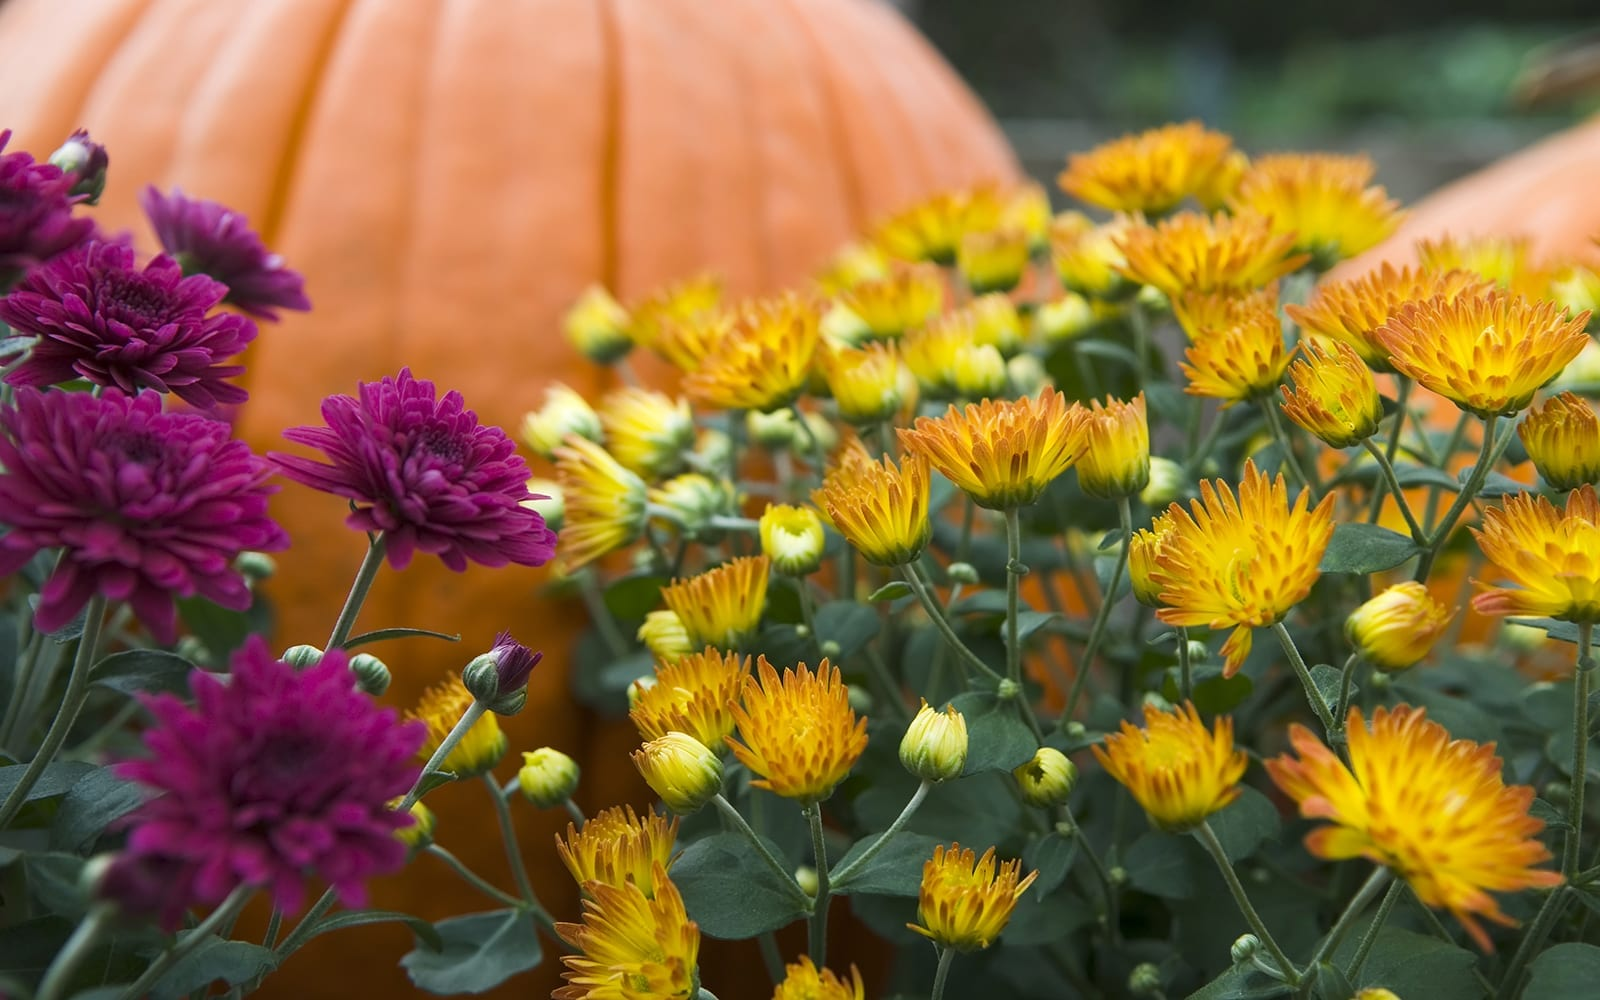 Fall Plants and Pumpkins